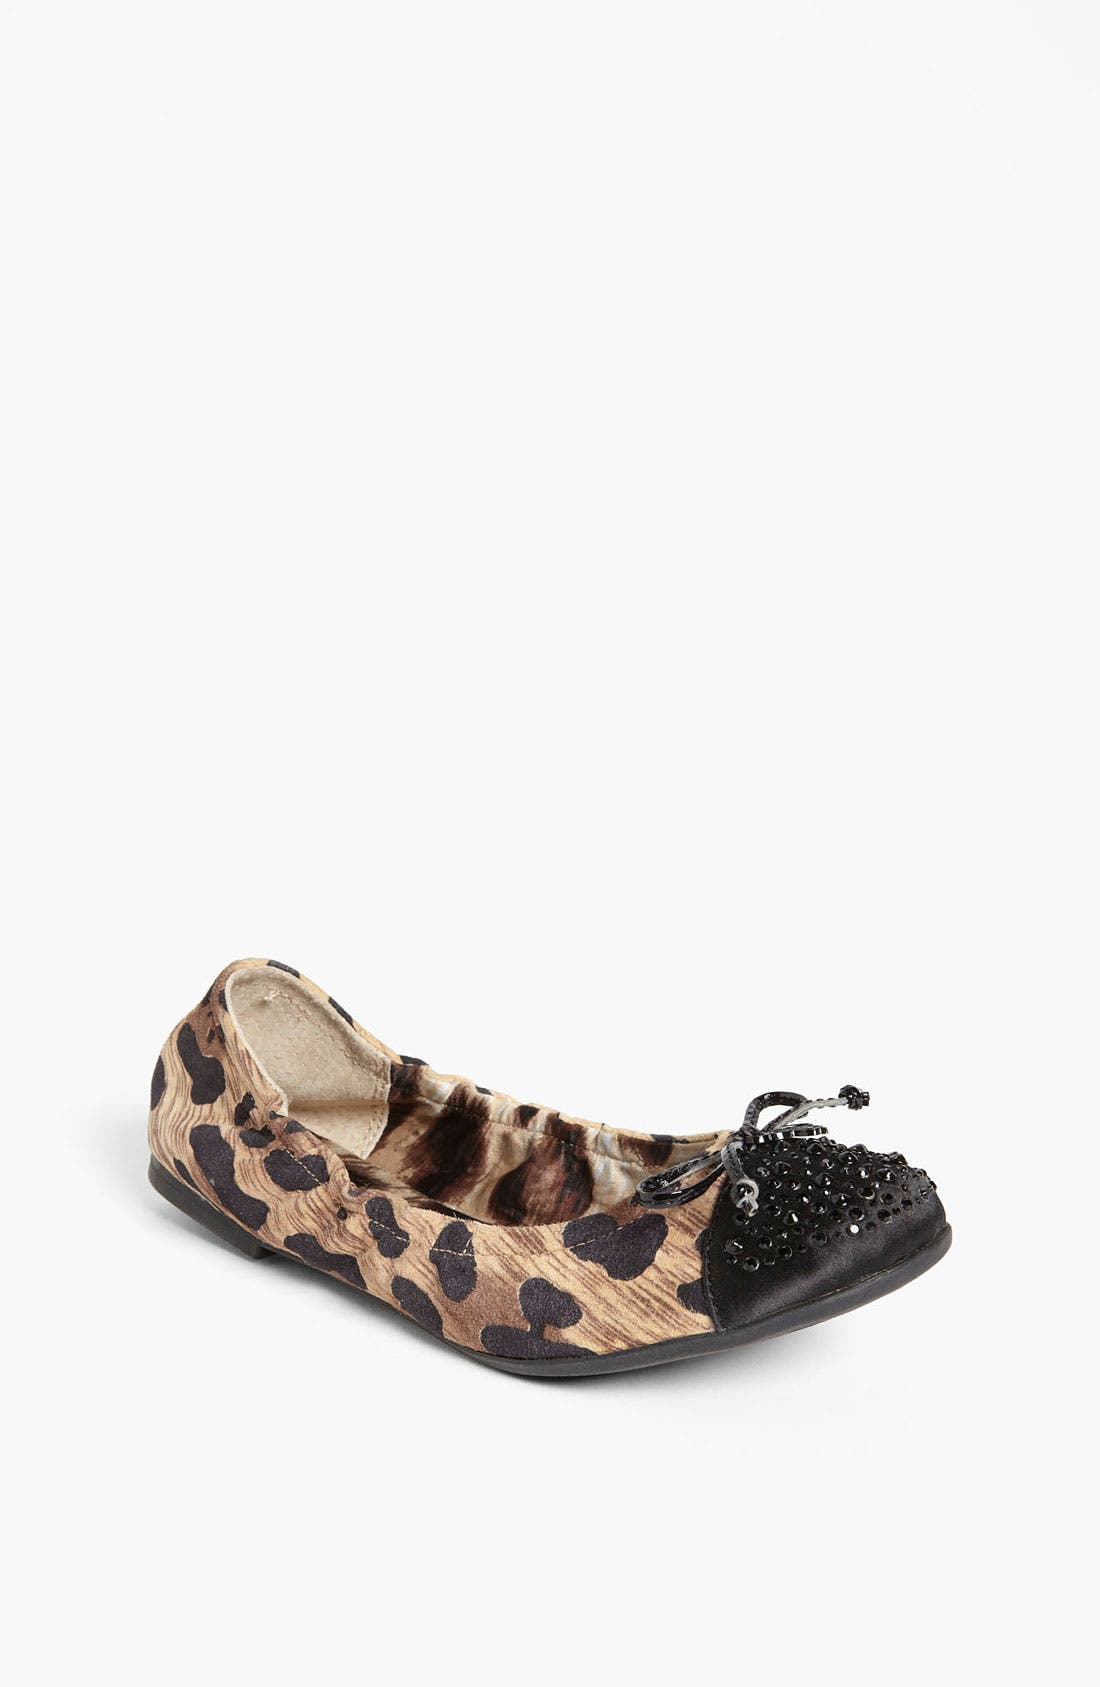 Alternate Image 1 Selected - Sam Edelman Leopard Print Flat (Toddler, Little Kid & Big Kid)